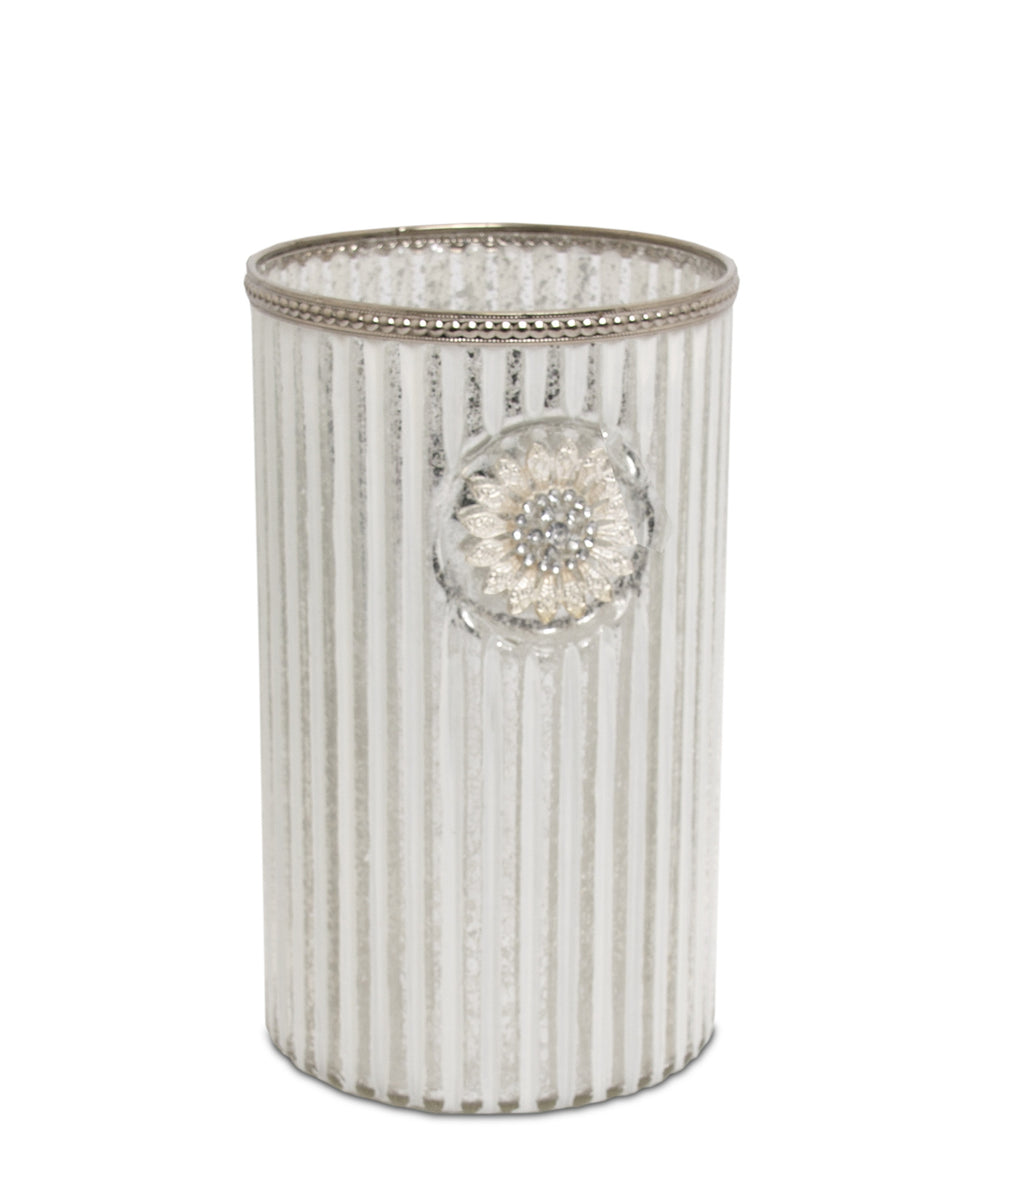 Scallop Pillar Vase - From Heart and Home